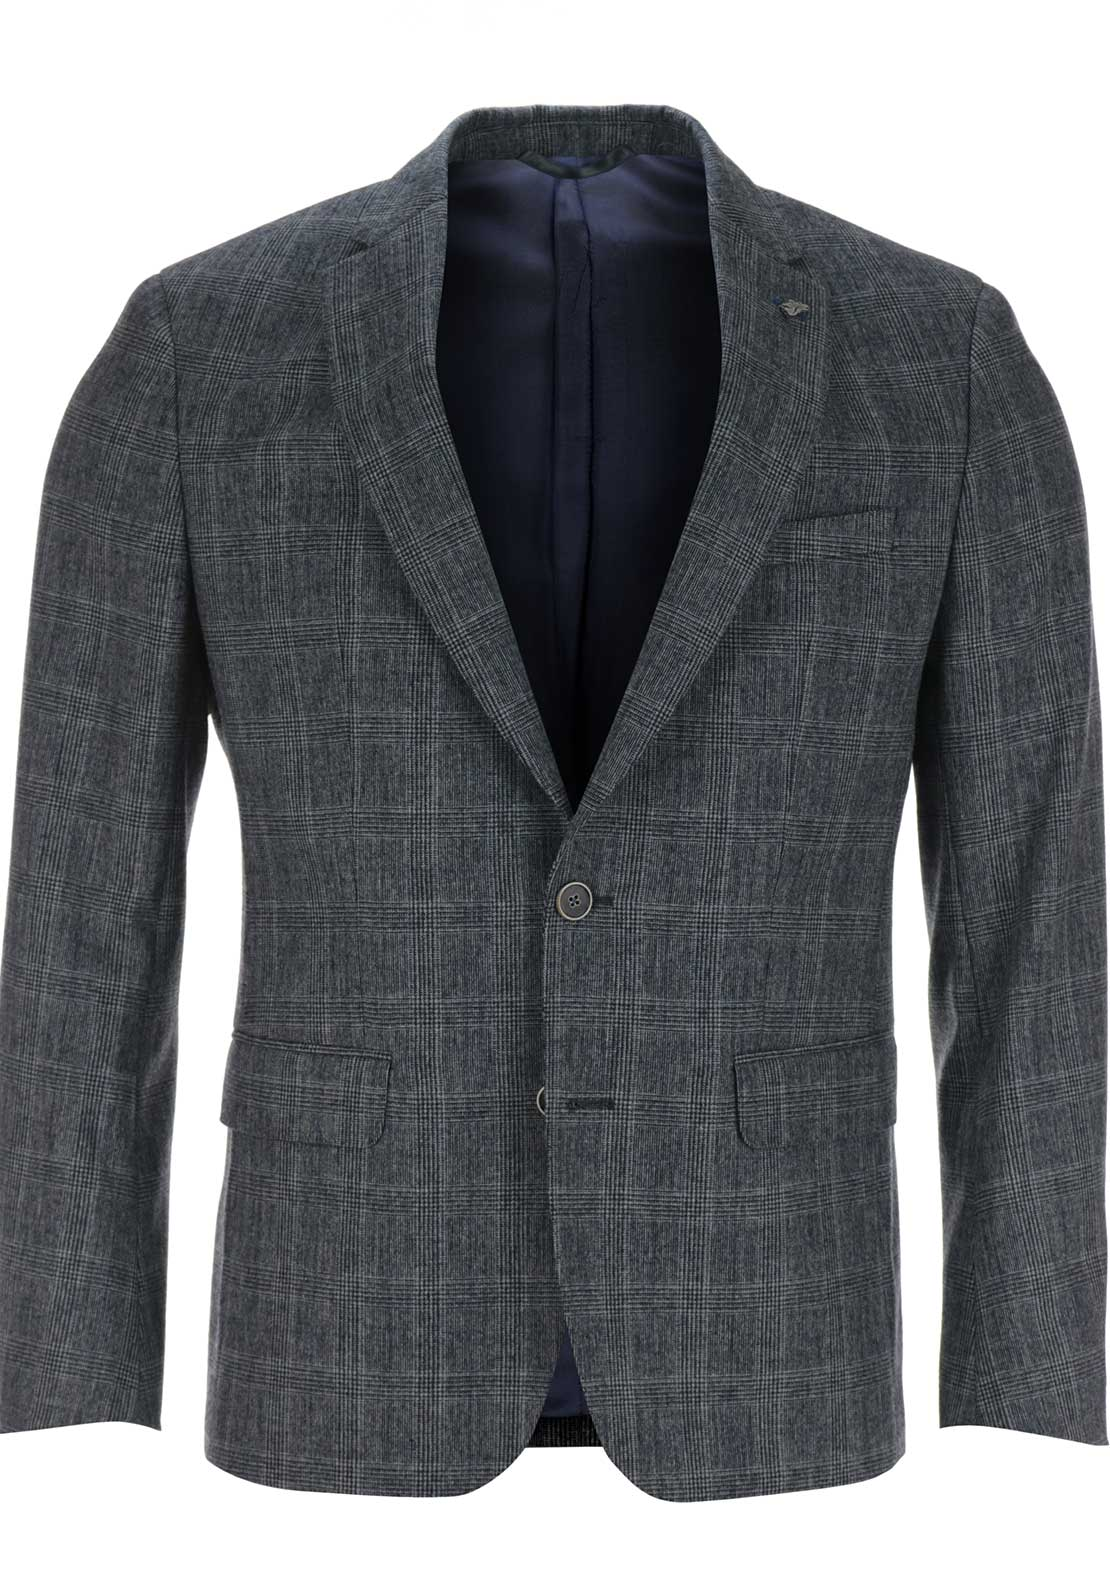 Remus Uomo Mens Trelano Two Button Checked Blazer, Grey